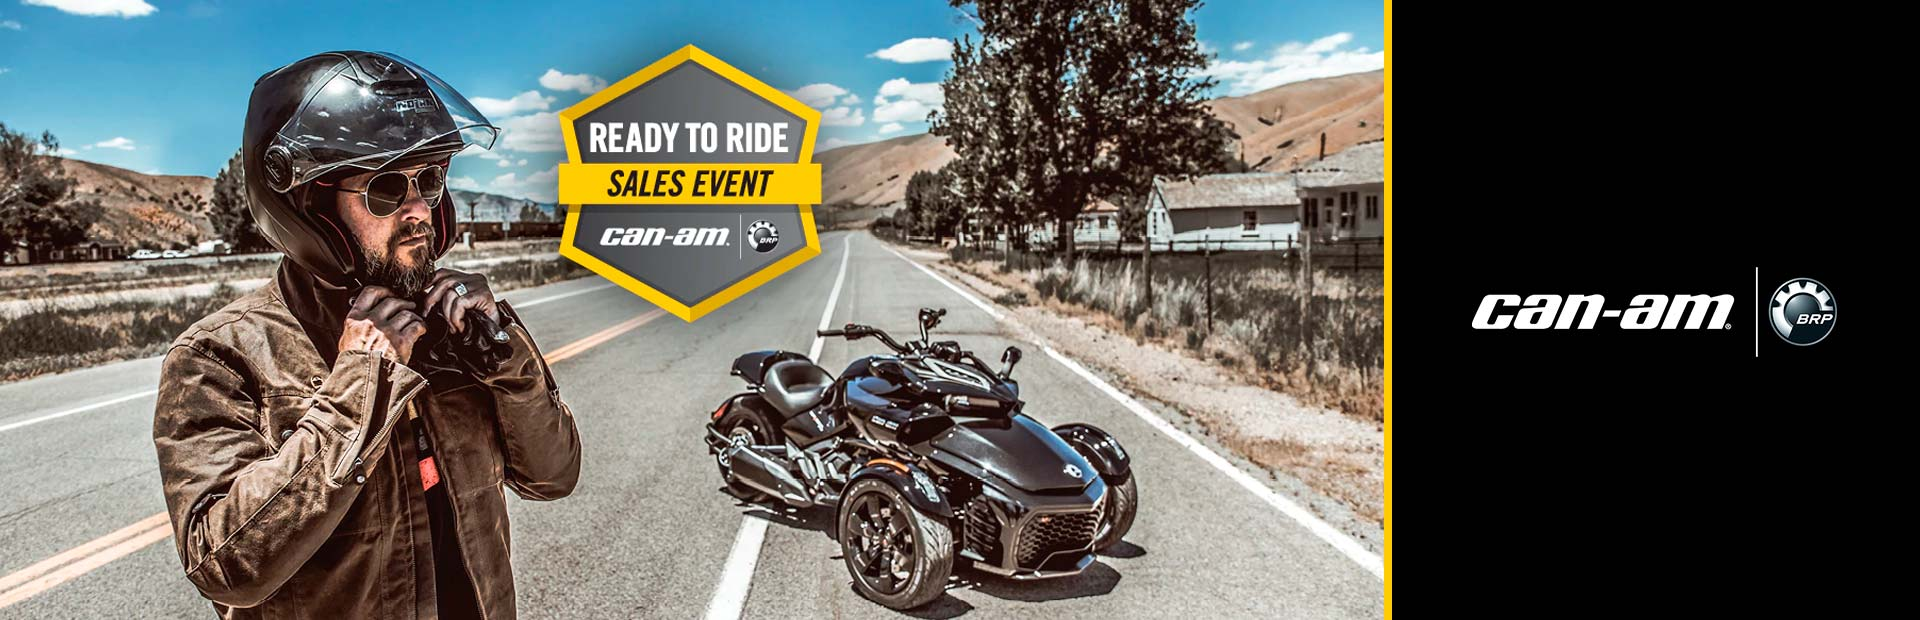 Can-Am: Ready To Ride Sales Event -Spyder